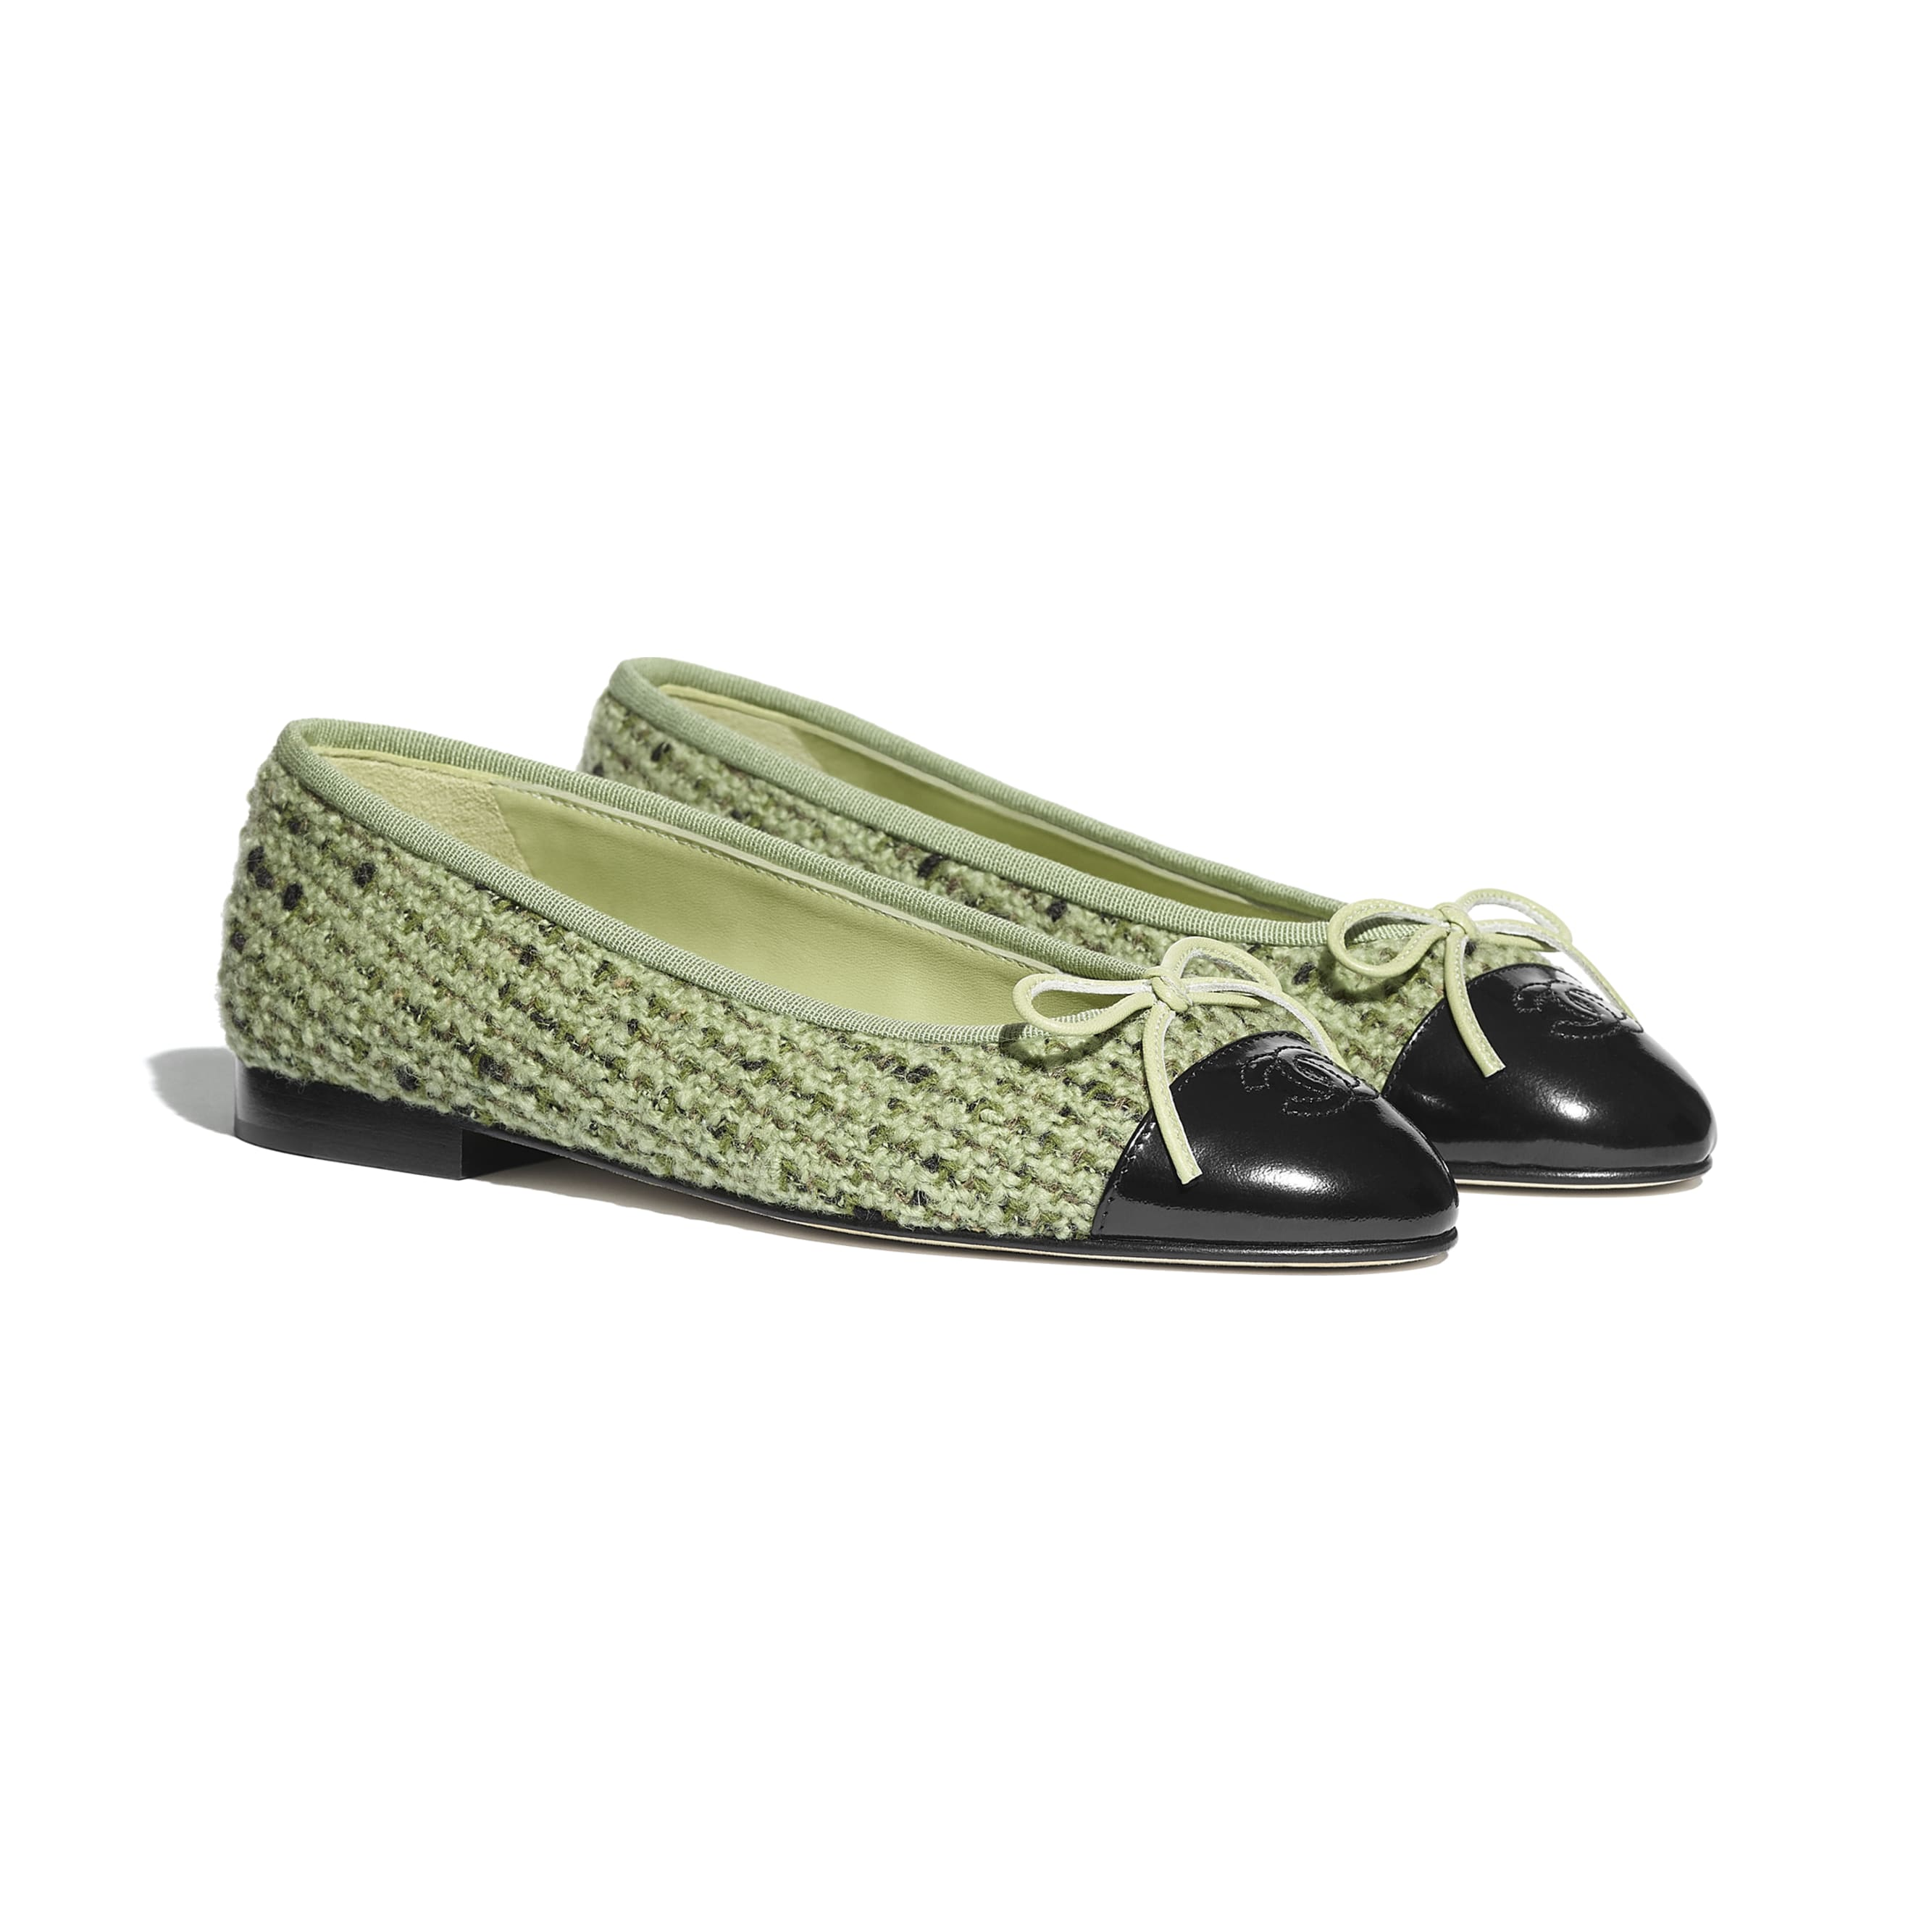 Flats - Green & Black - Tweed & Calfskin - CHANEL - Alternative view - see standard sized version